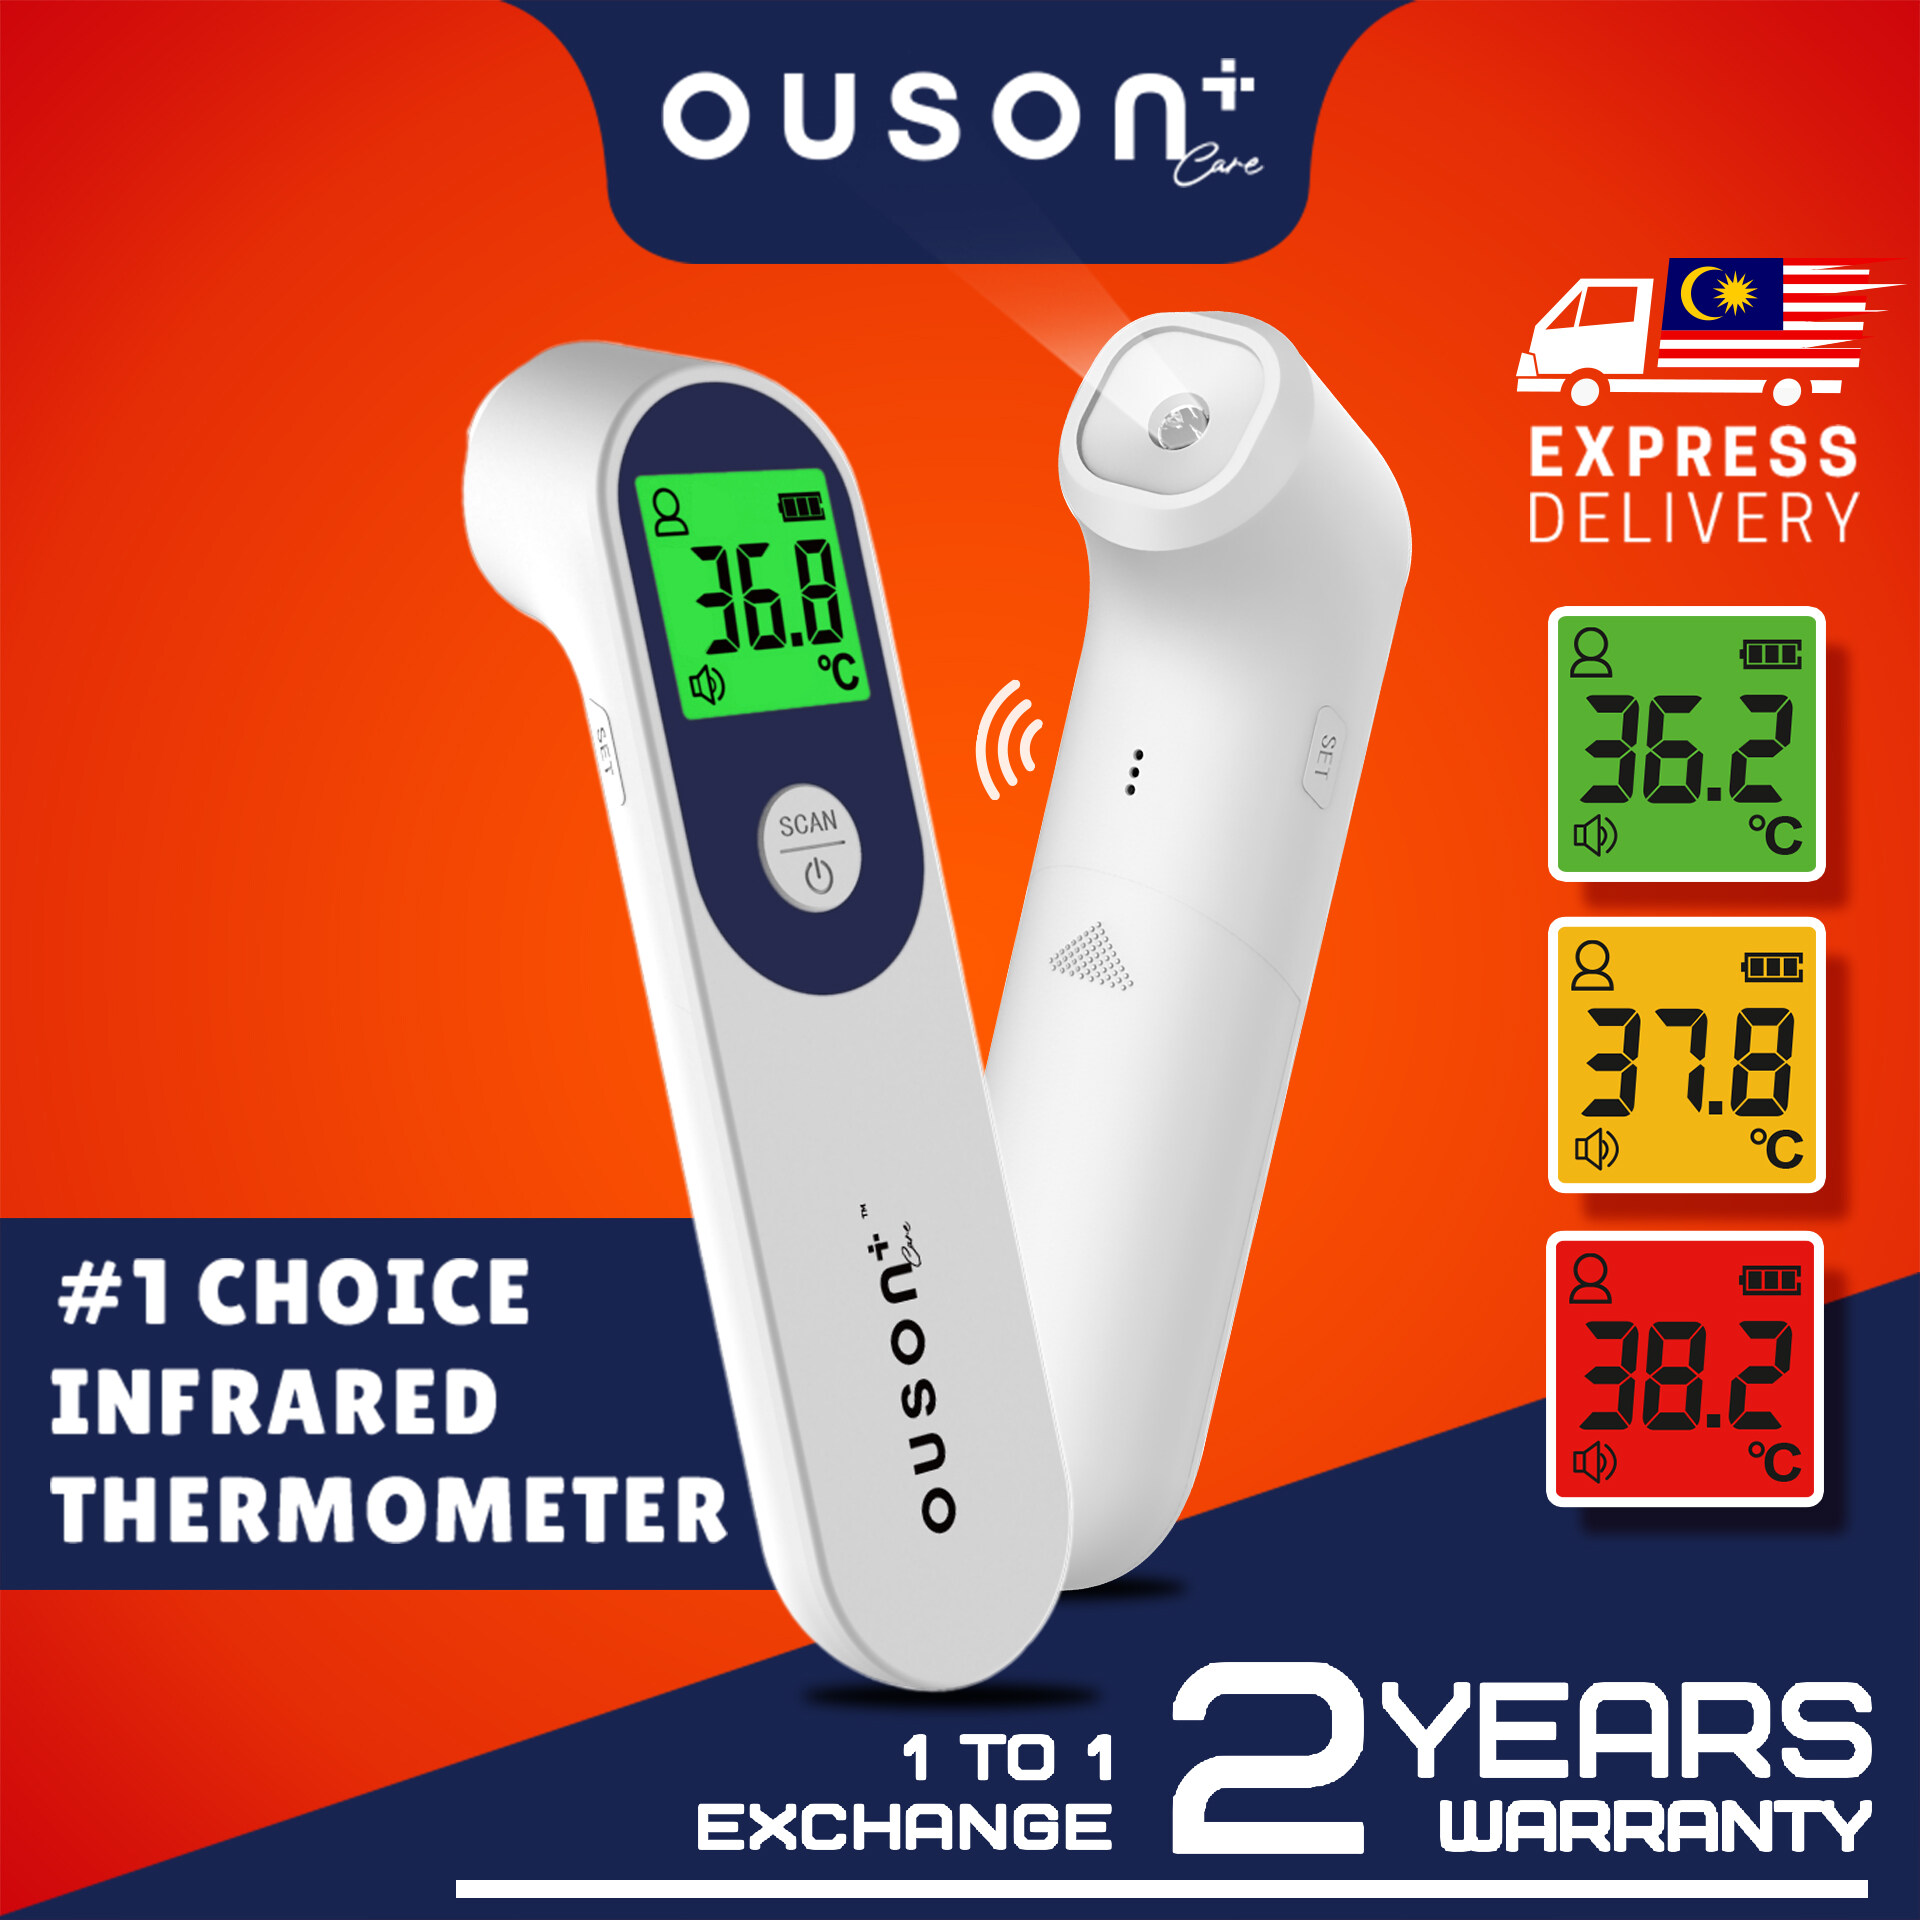 [#1 CHOICE] OUSON+ CARE CONTACTLESS INFRARED MULTIFUNCTION FOREHEAD THERMOMETER SCAN SCANNER FOR BABY AND ADULT